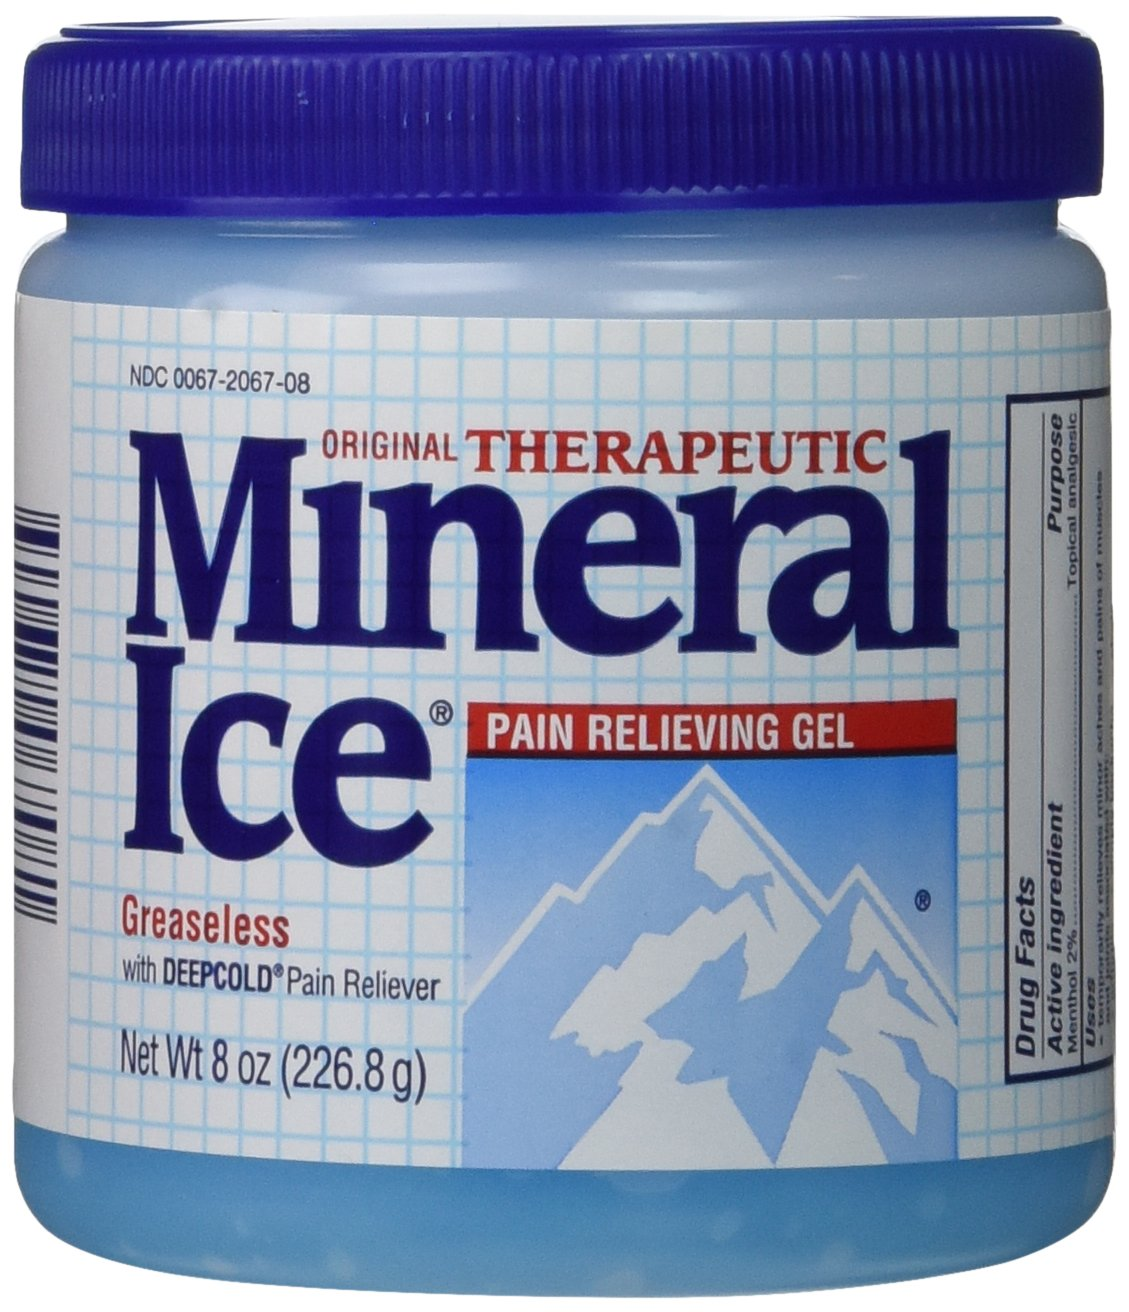 Novartis Mineral Ice Pain Relieving Gel, Original Therapeutic, 2 Count, 8 Ounces.